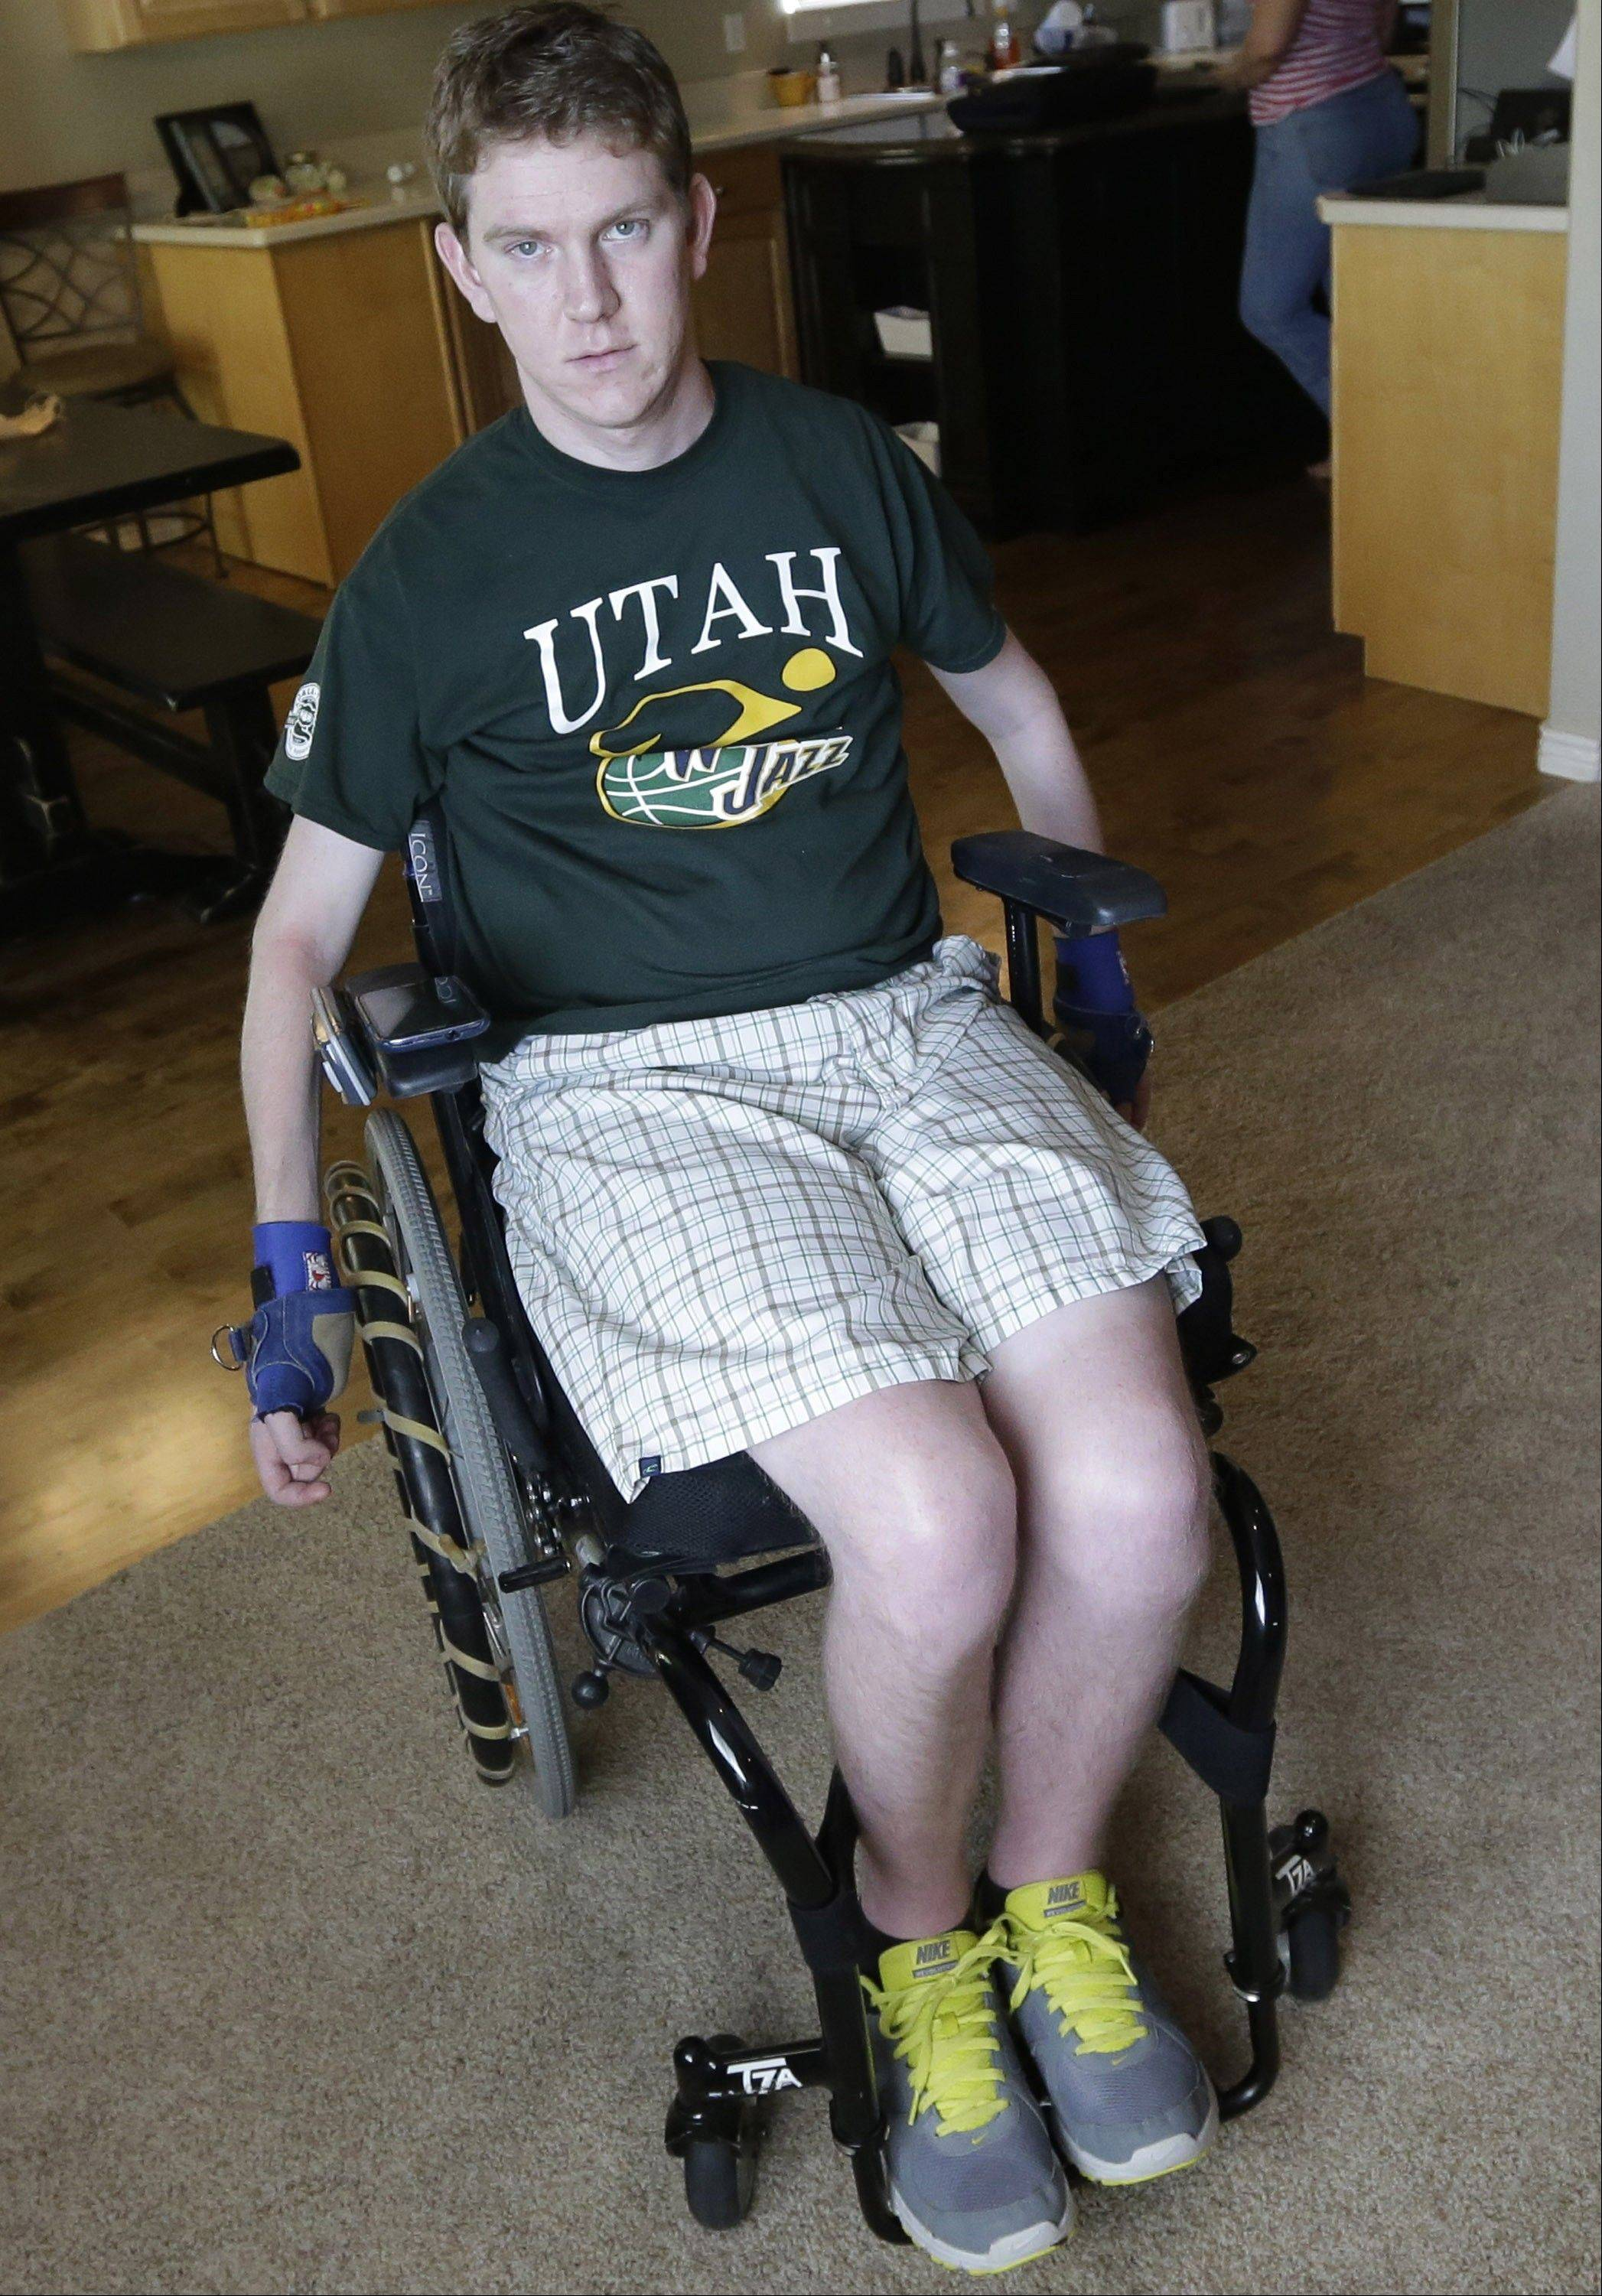 Stephen Merrill sits on his wheelchair at his home in Highland, Utah. Merrill broke a vertebra in his neck, and was left paralyzed from the neck down during a trampoline accident.